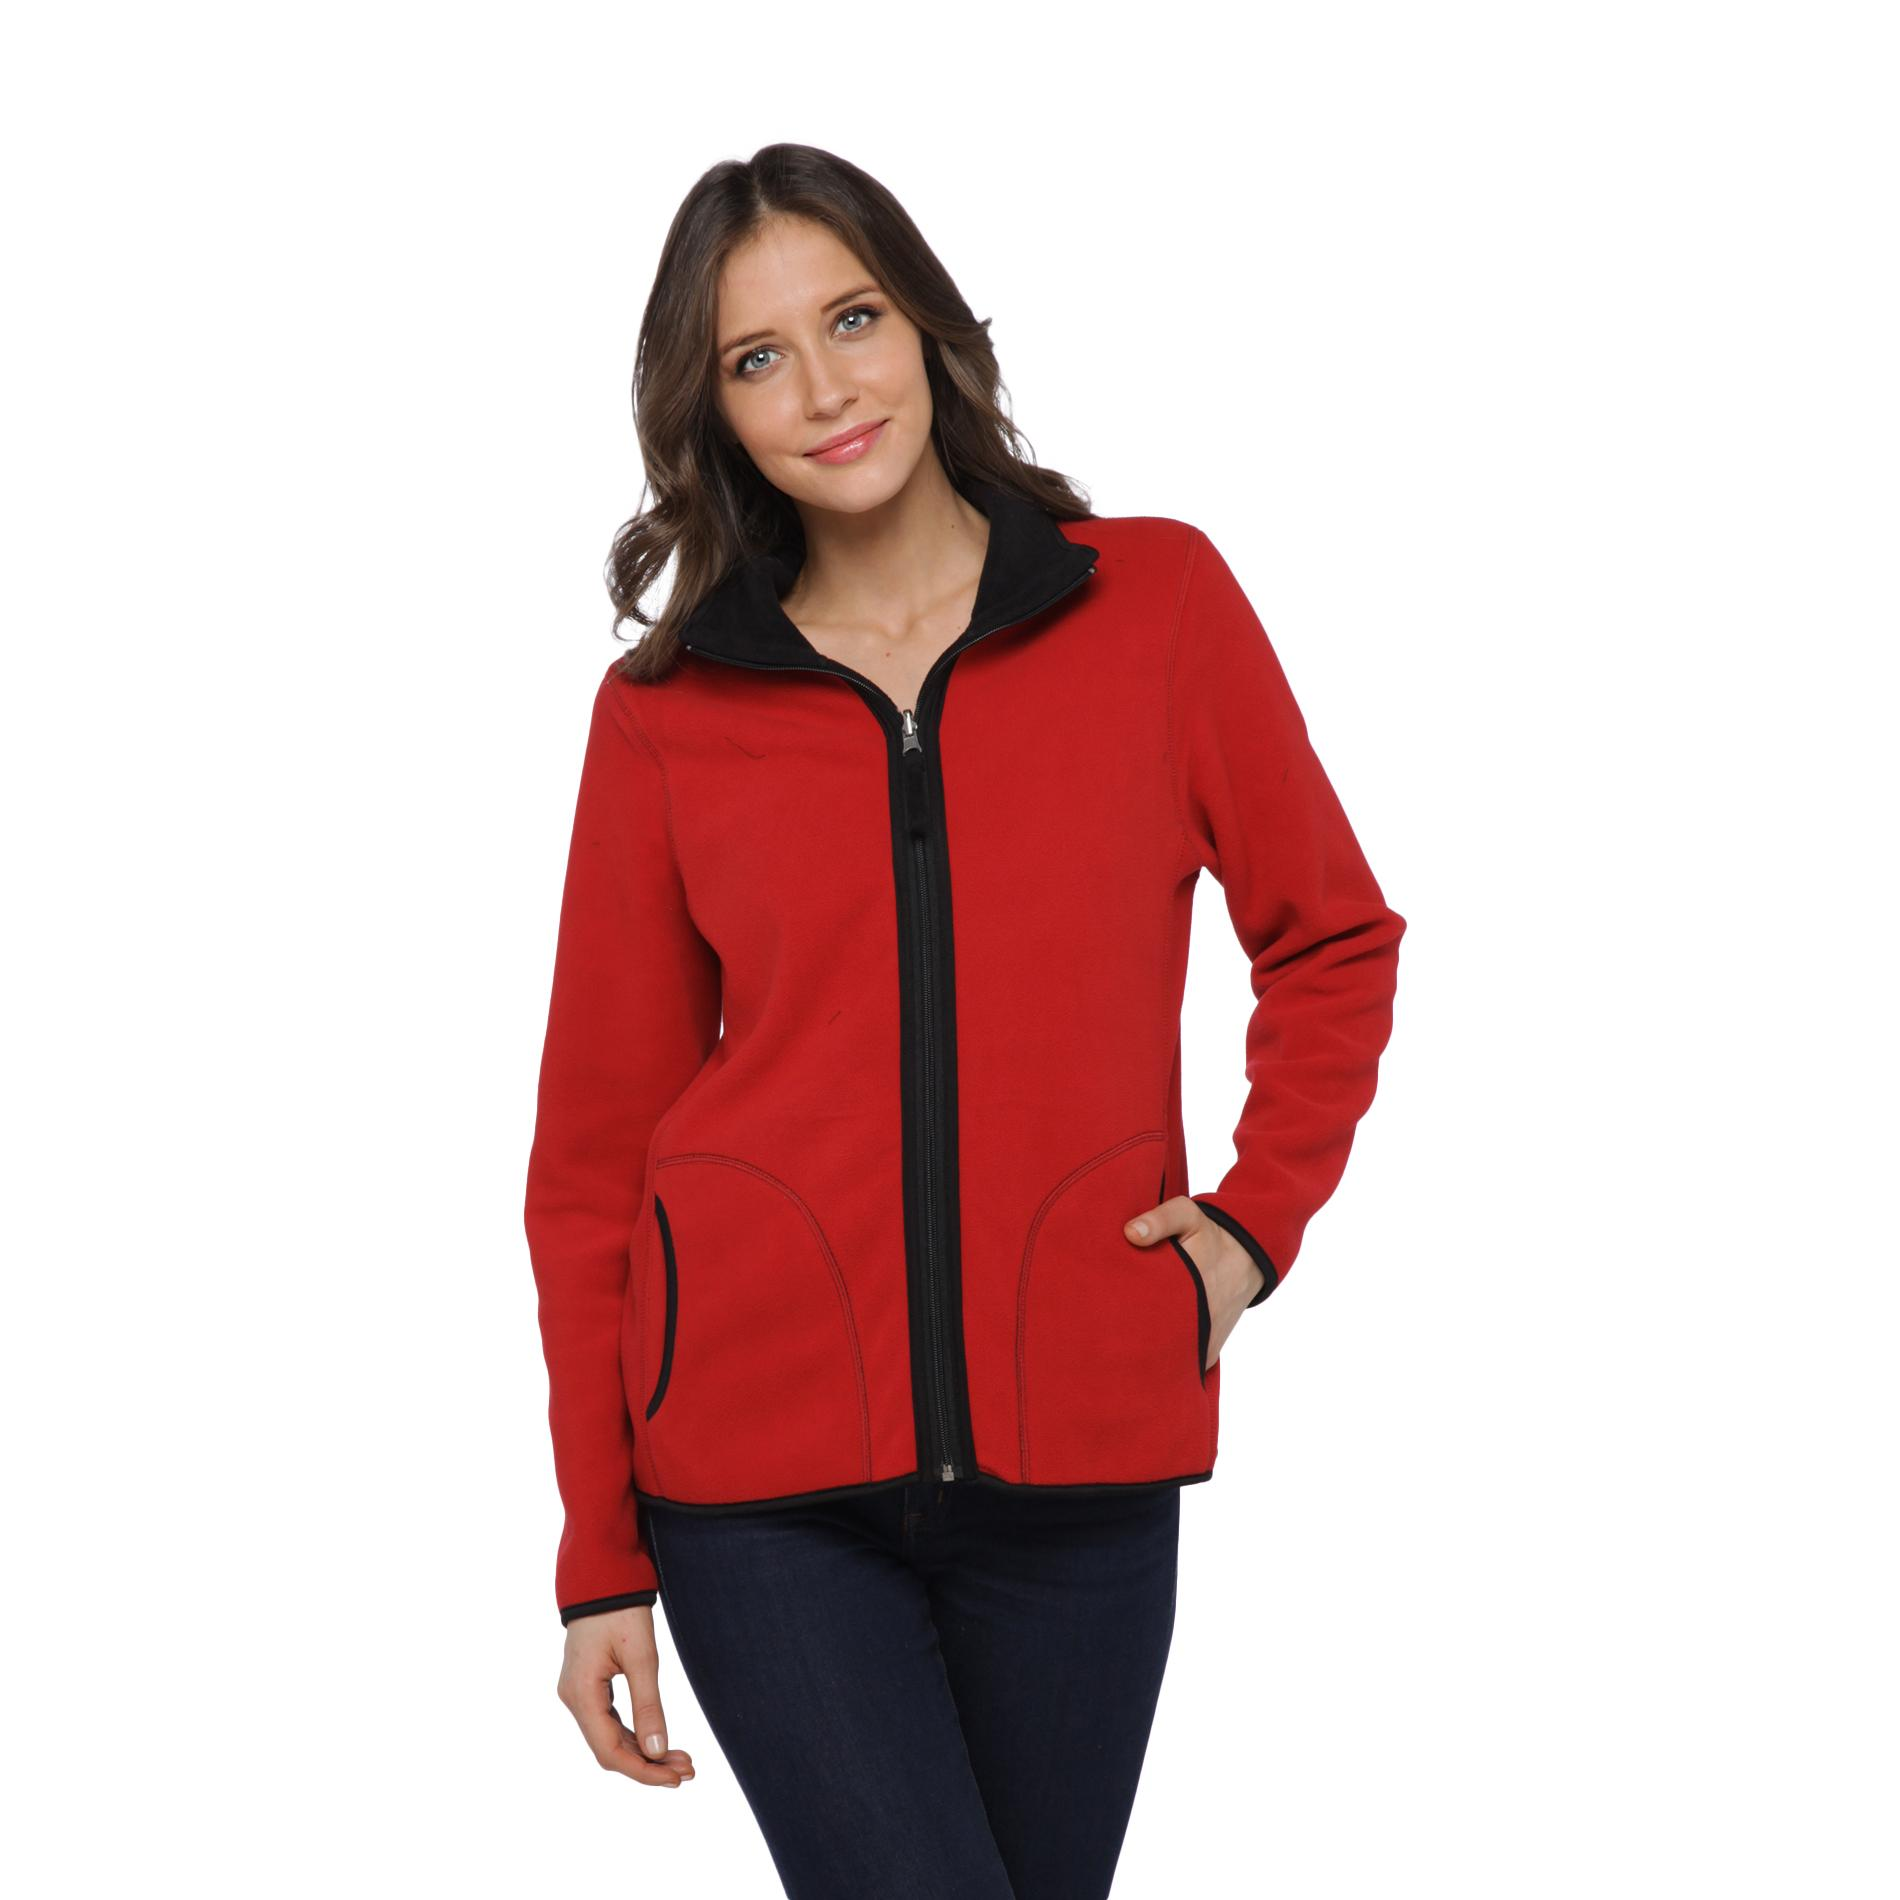 Laura Scott Women's Reversible Fleece Jacket at Sears.com